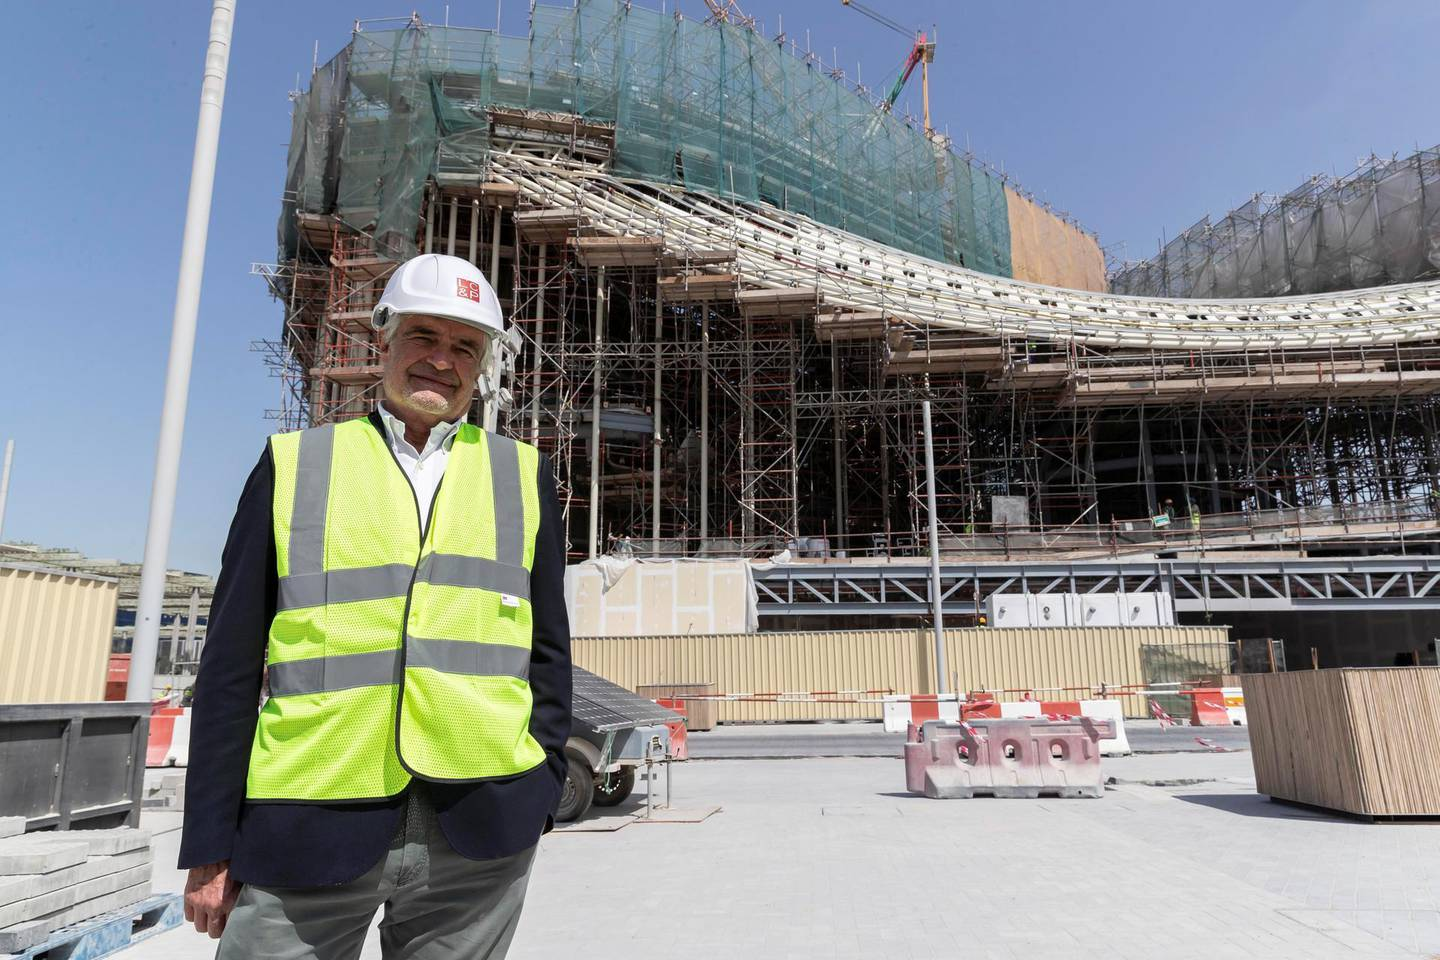 DUBAI, UNITED ARAB EMIRATES. 01 MARCH 2021. Italy expo commissioner Paolo Glisenti. Construction work continueing at full scale on the Italian Pavilion at the Expo 2021 site in Dubai. (Photo: Antonie Robertson/The National) Journalist: Ramola Talwar. Section: National.